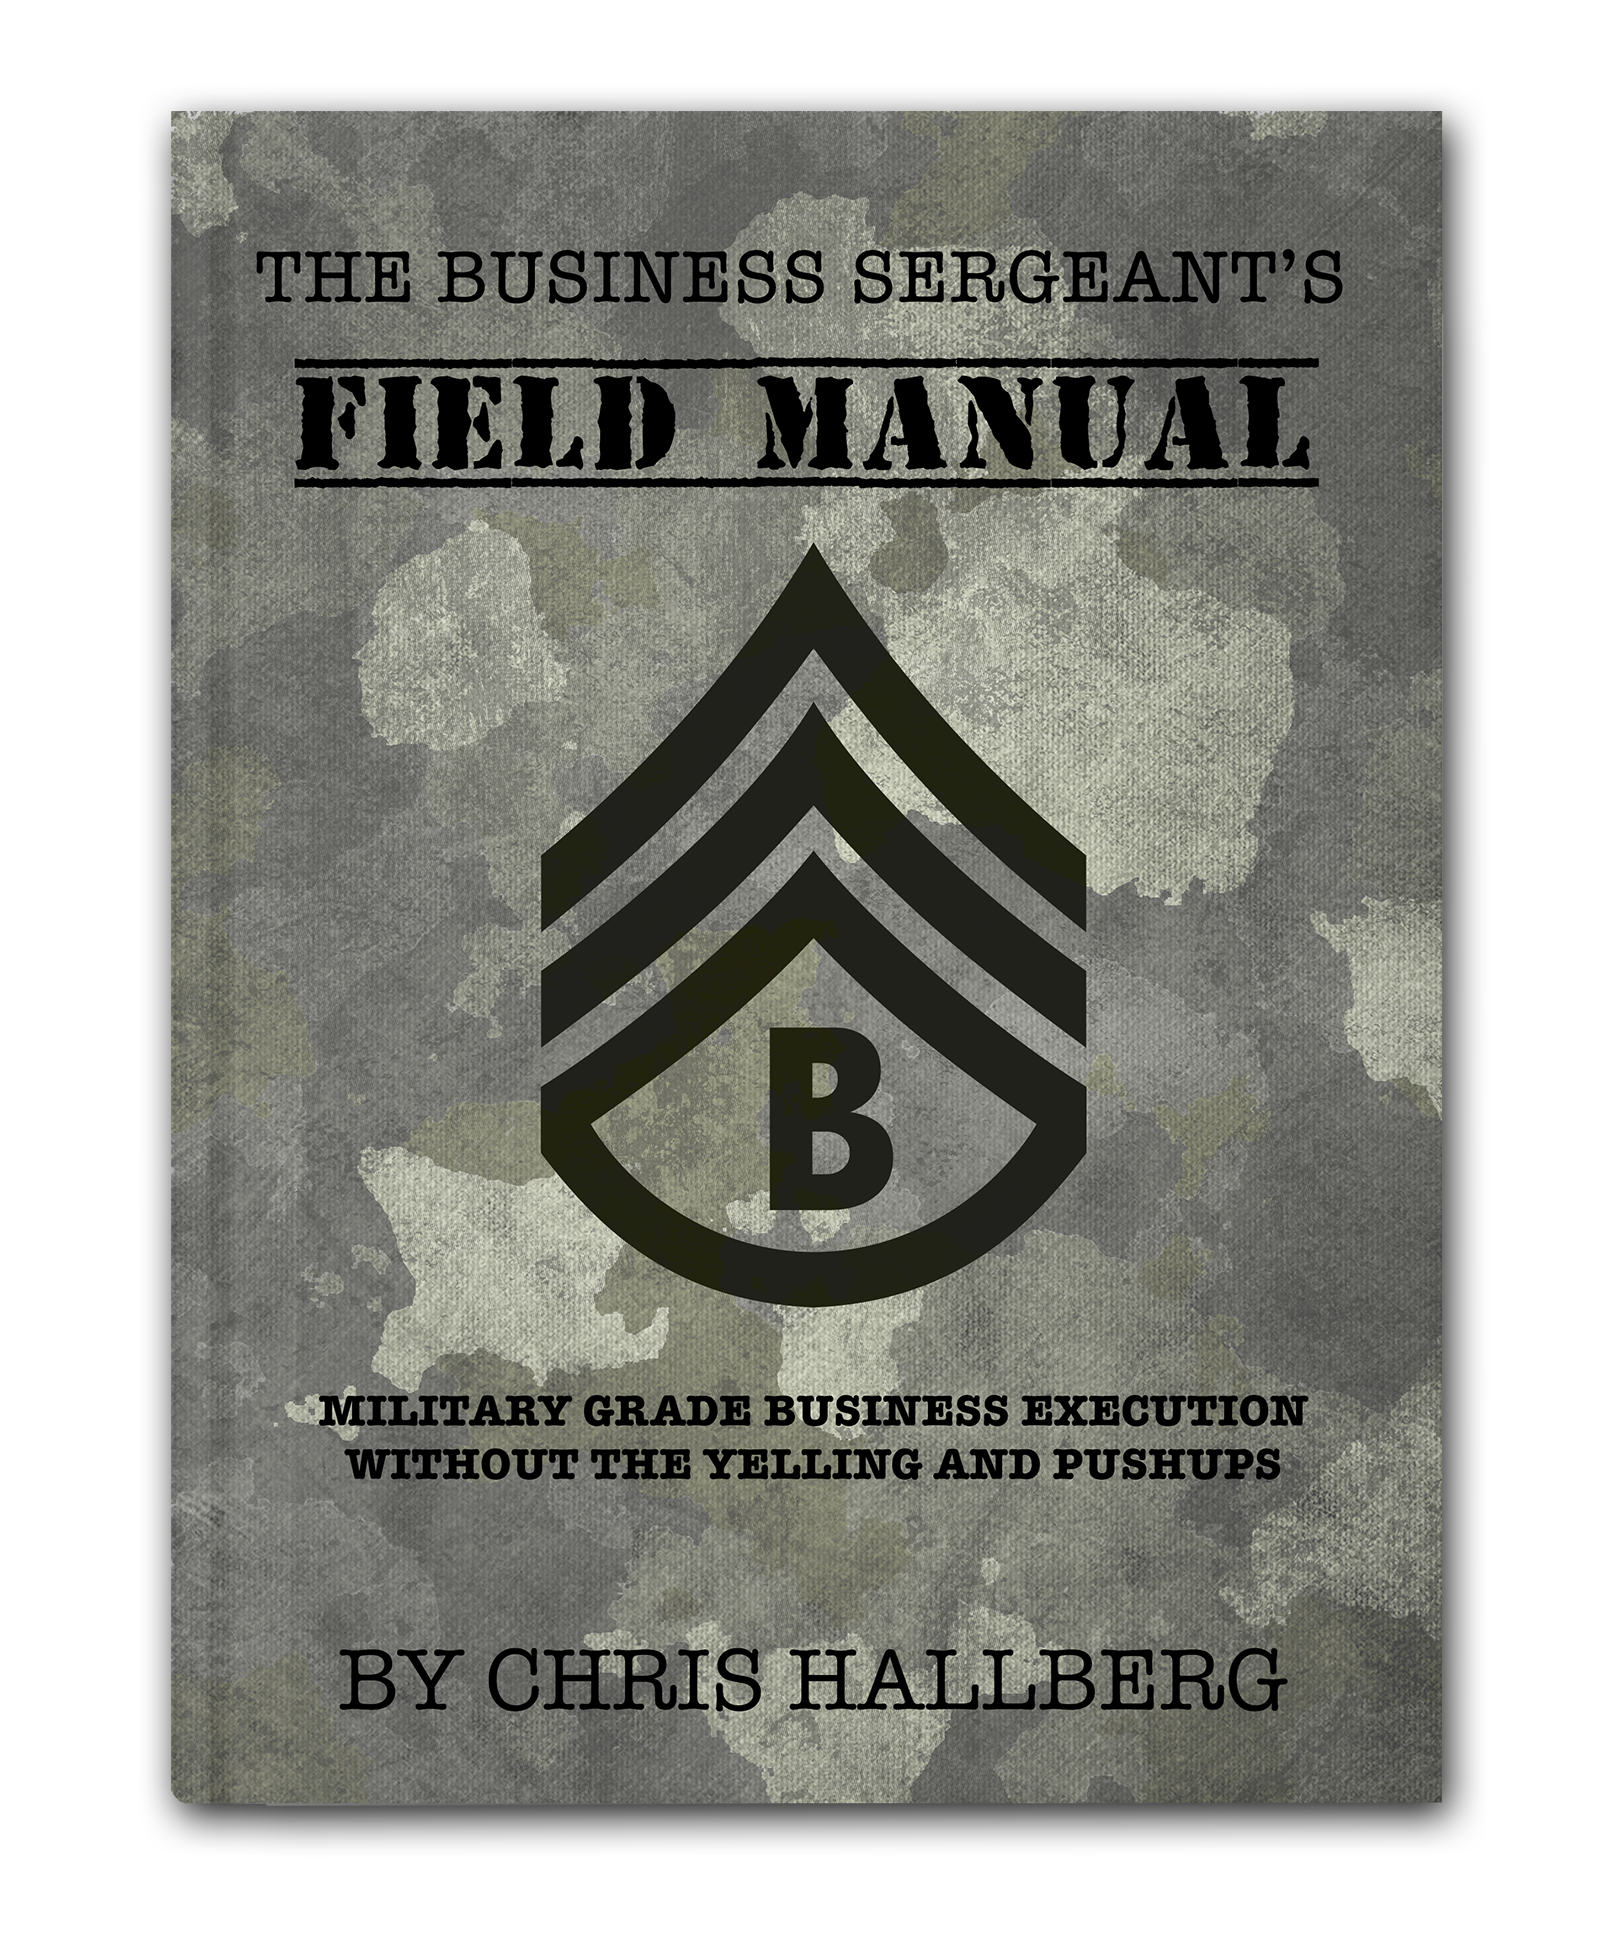 The Business Sergeant's Field Manual